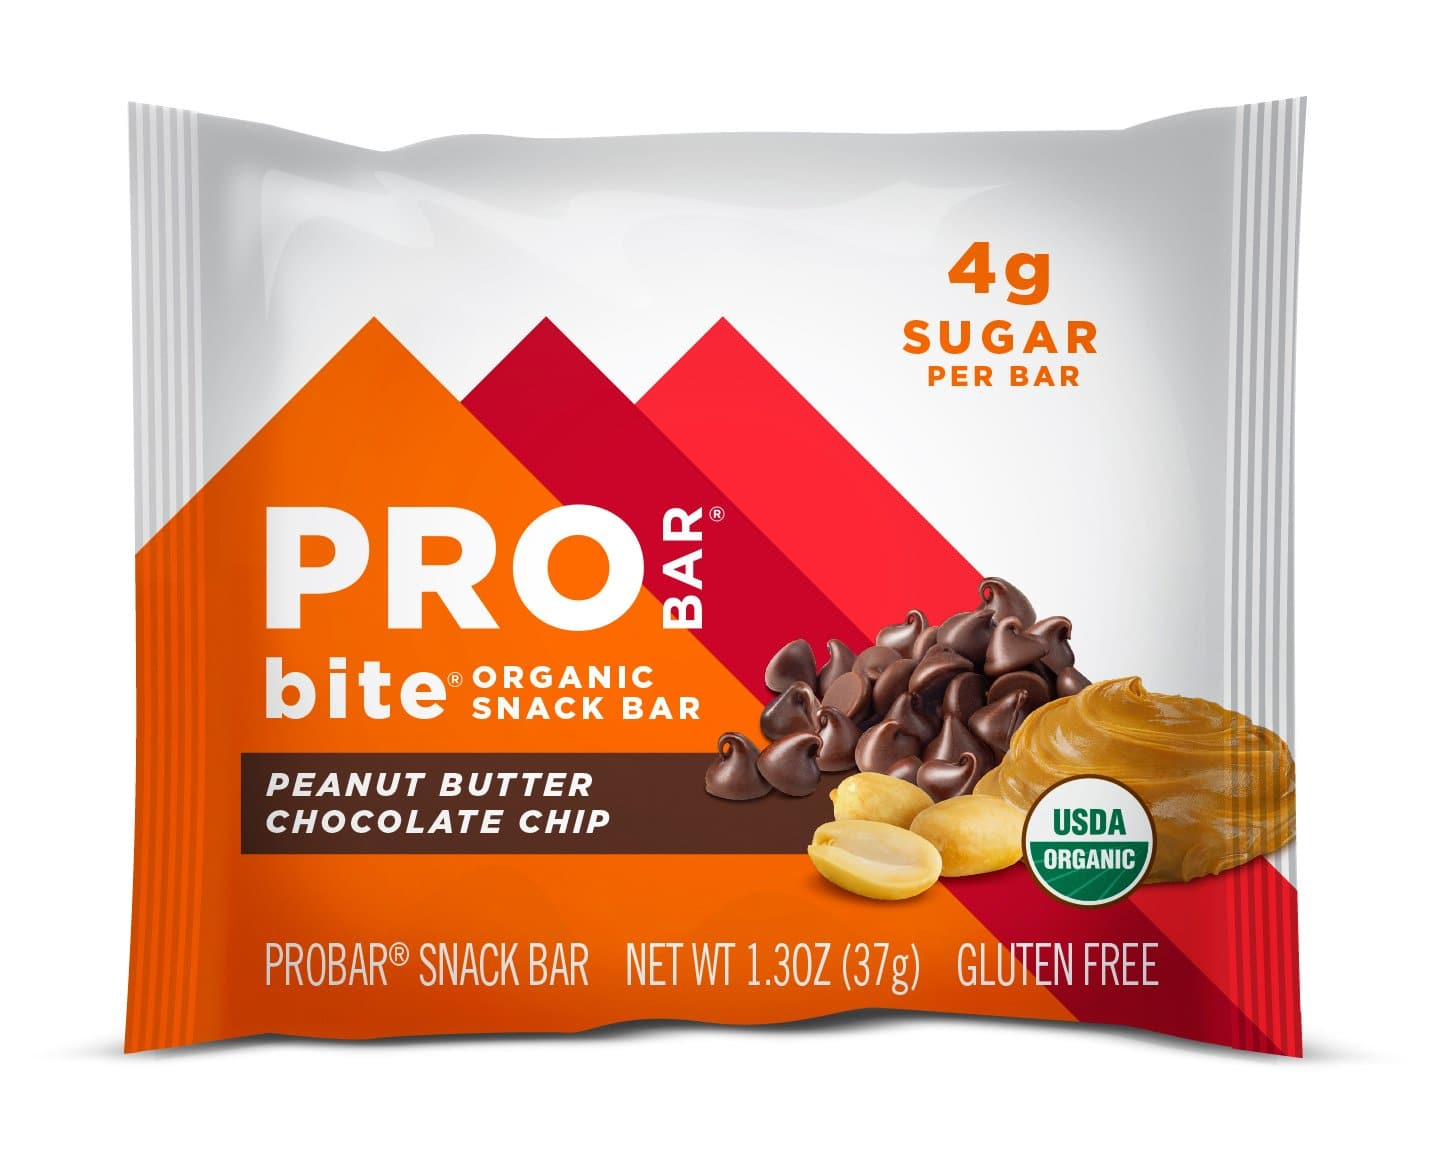 Peanut Butter Chocolate Chip 5-Pack - The PROBAR